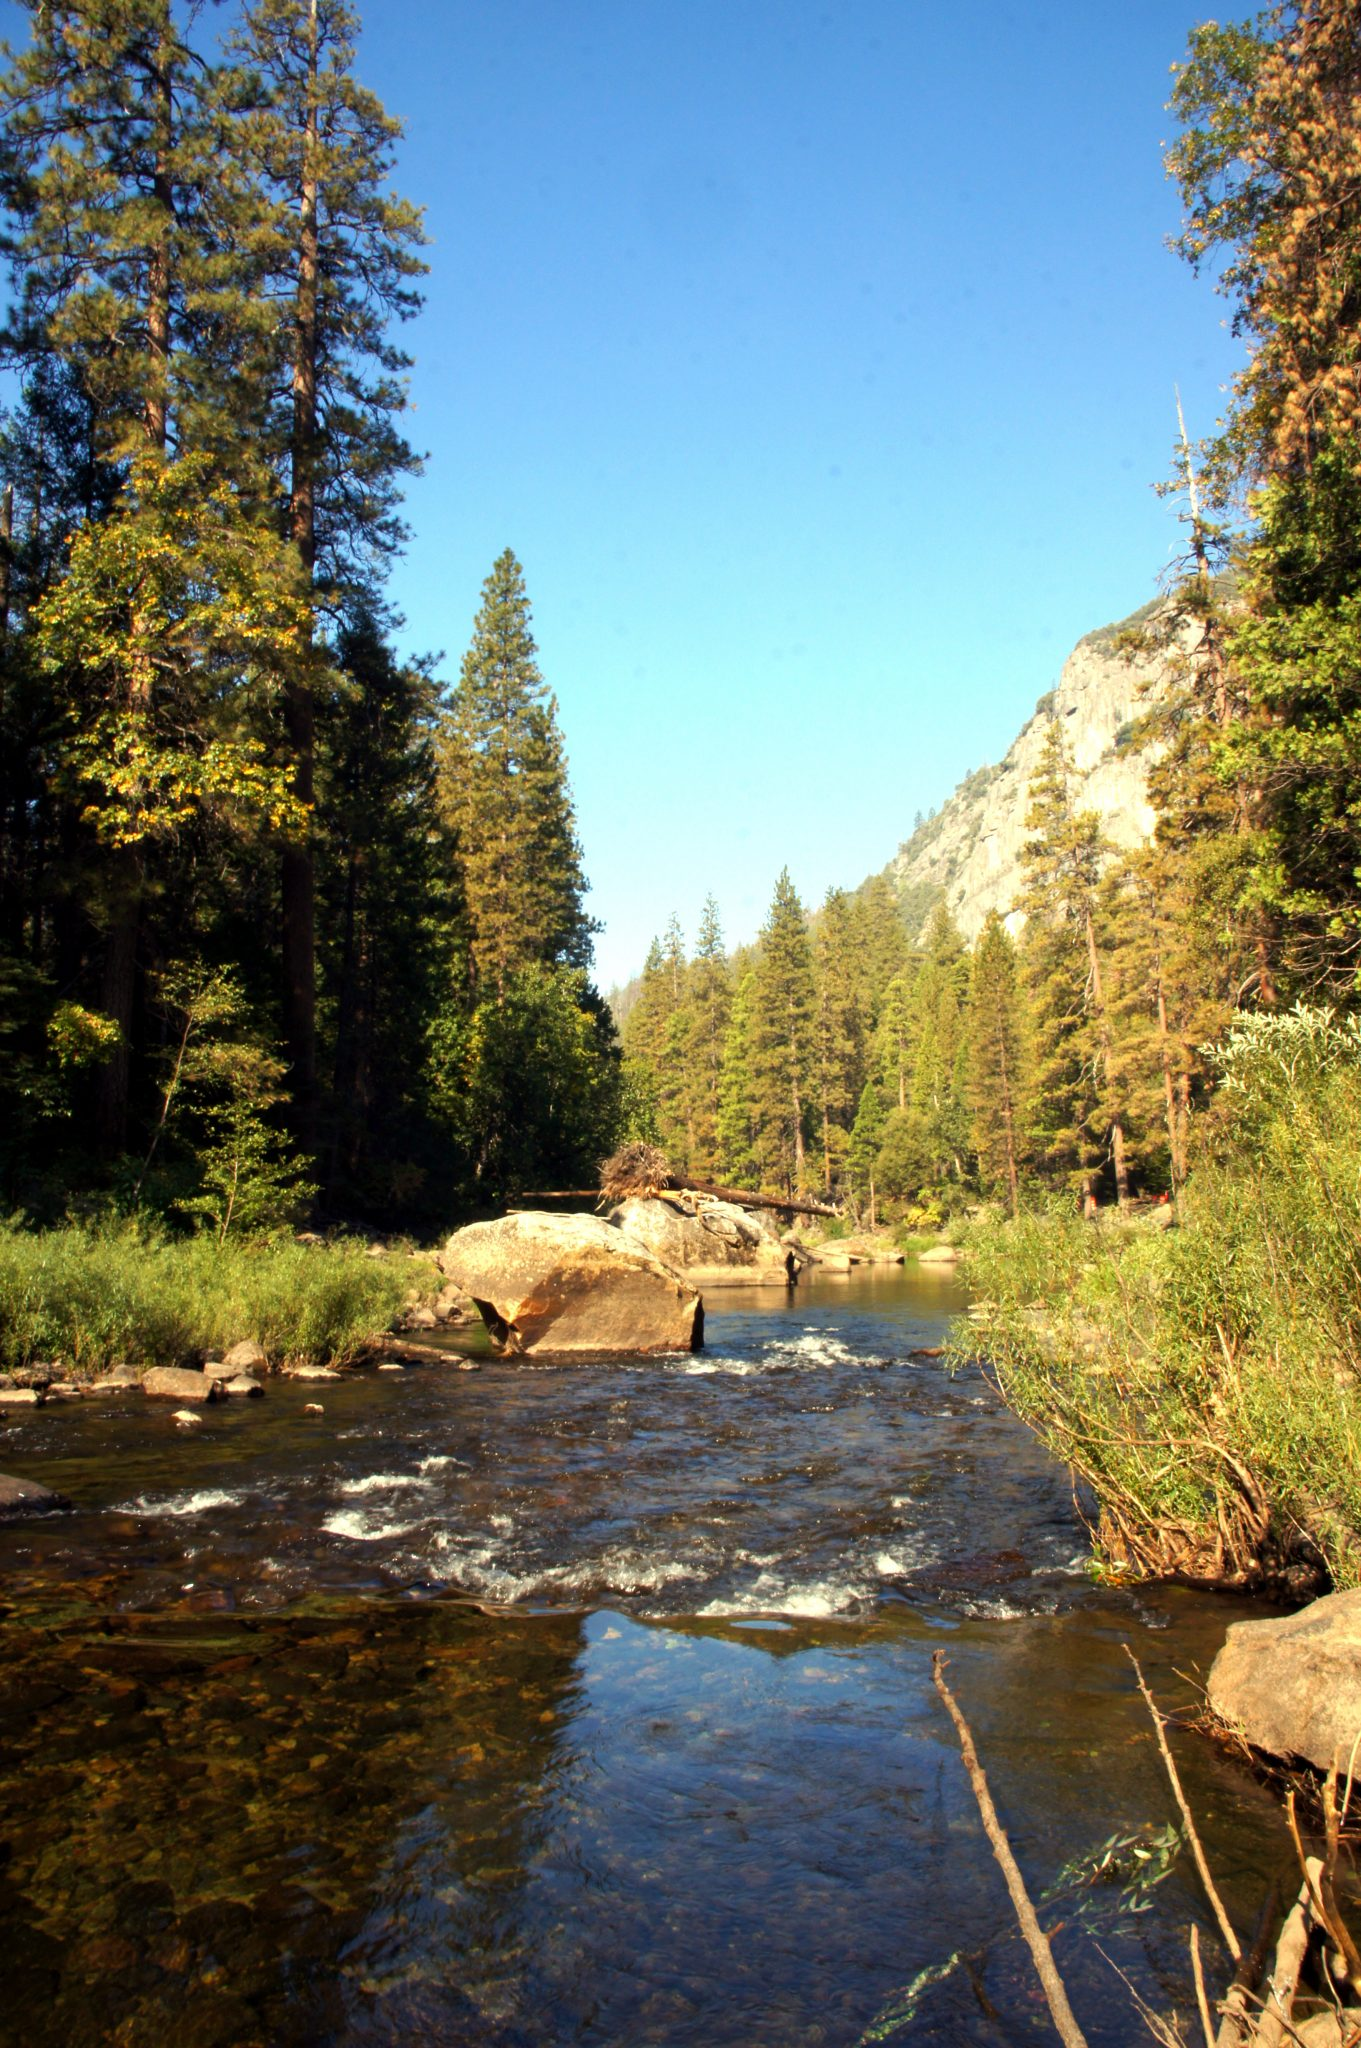 picture of a river in the Yosemite national park